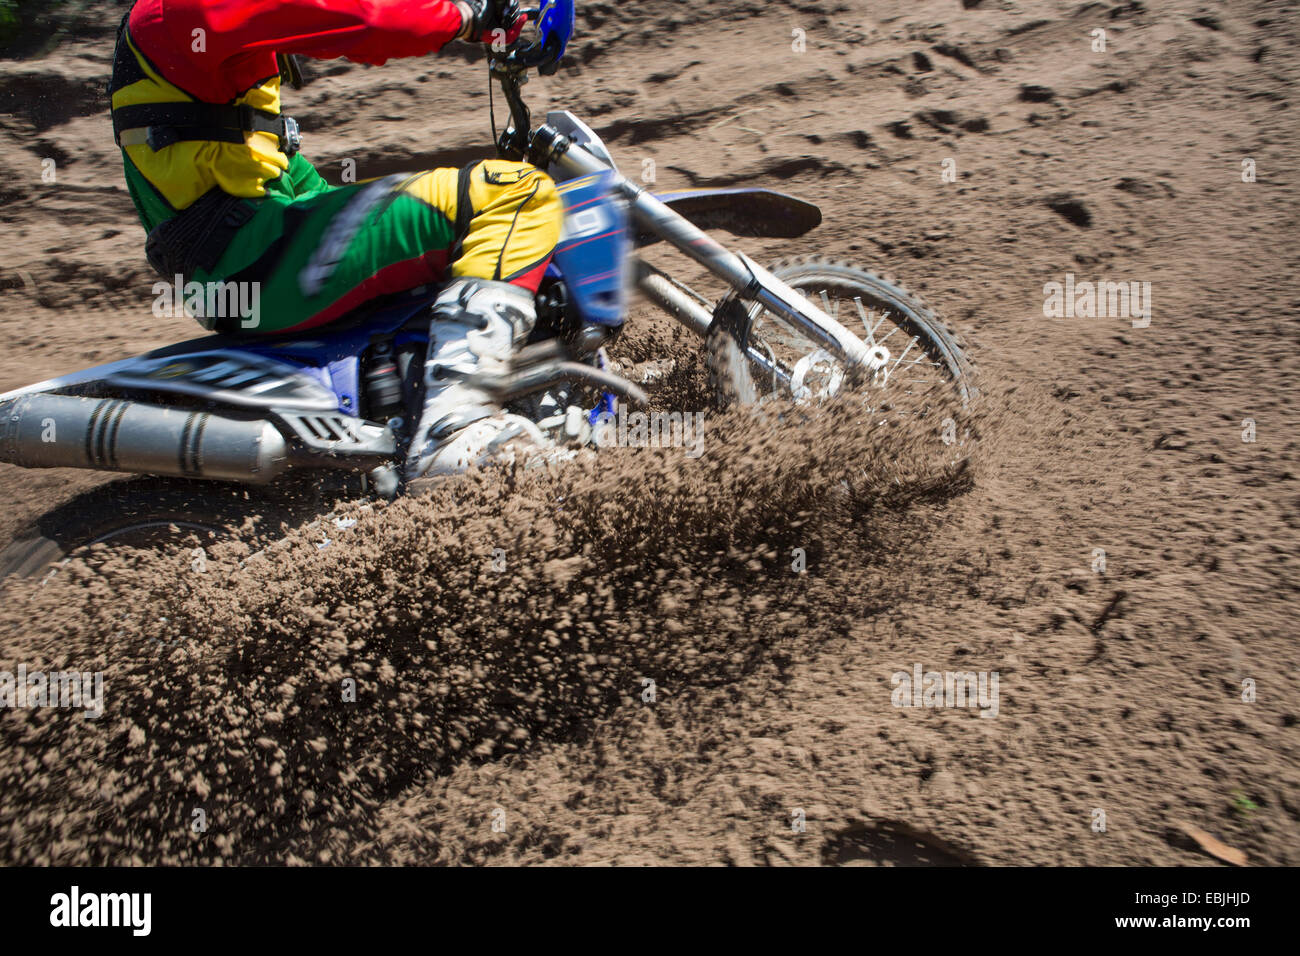 Young male motocross rider racing through mud track - Stock Image